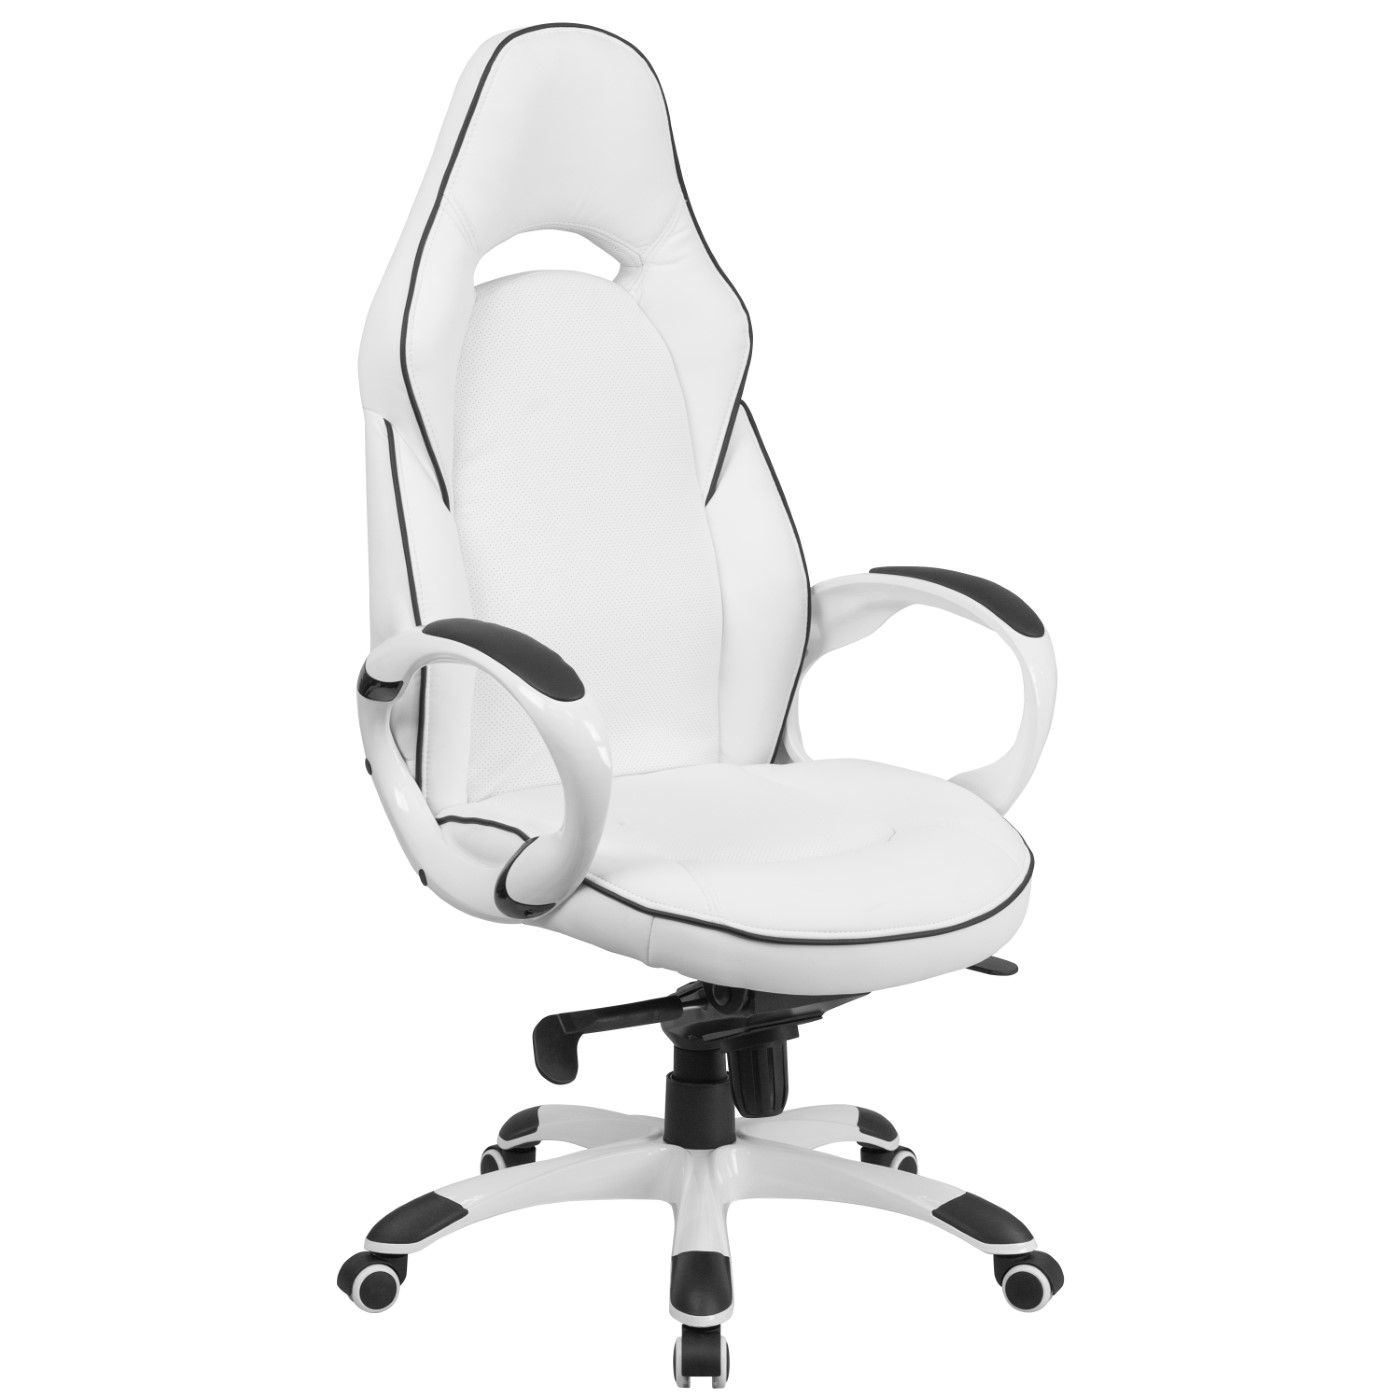 High Back White Vinyl Executive Swivel Office Chair with Black Trim and Arms